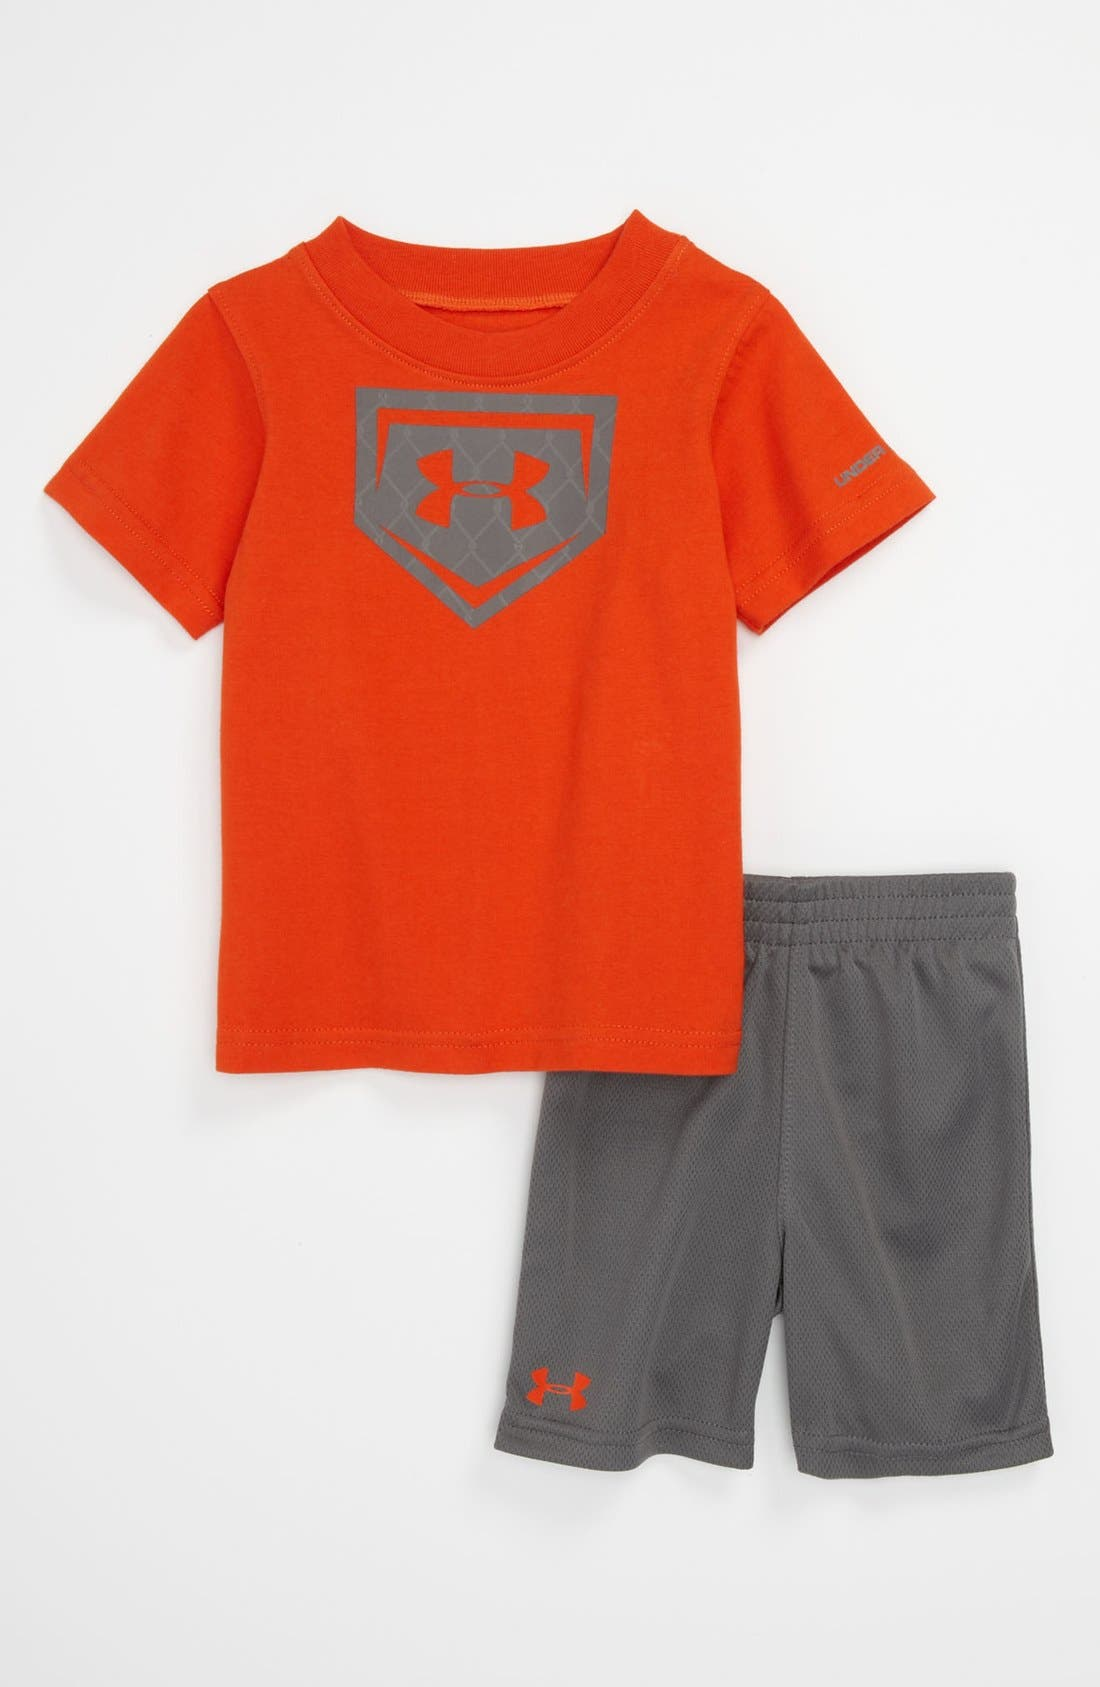 Main Image - Under Armour T-Shirt & Shorts (Baby)